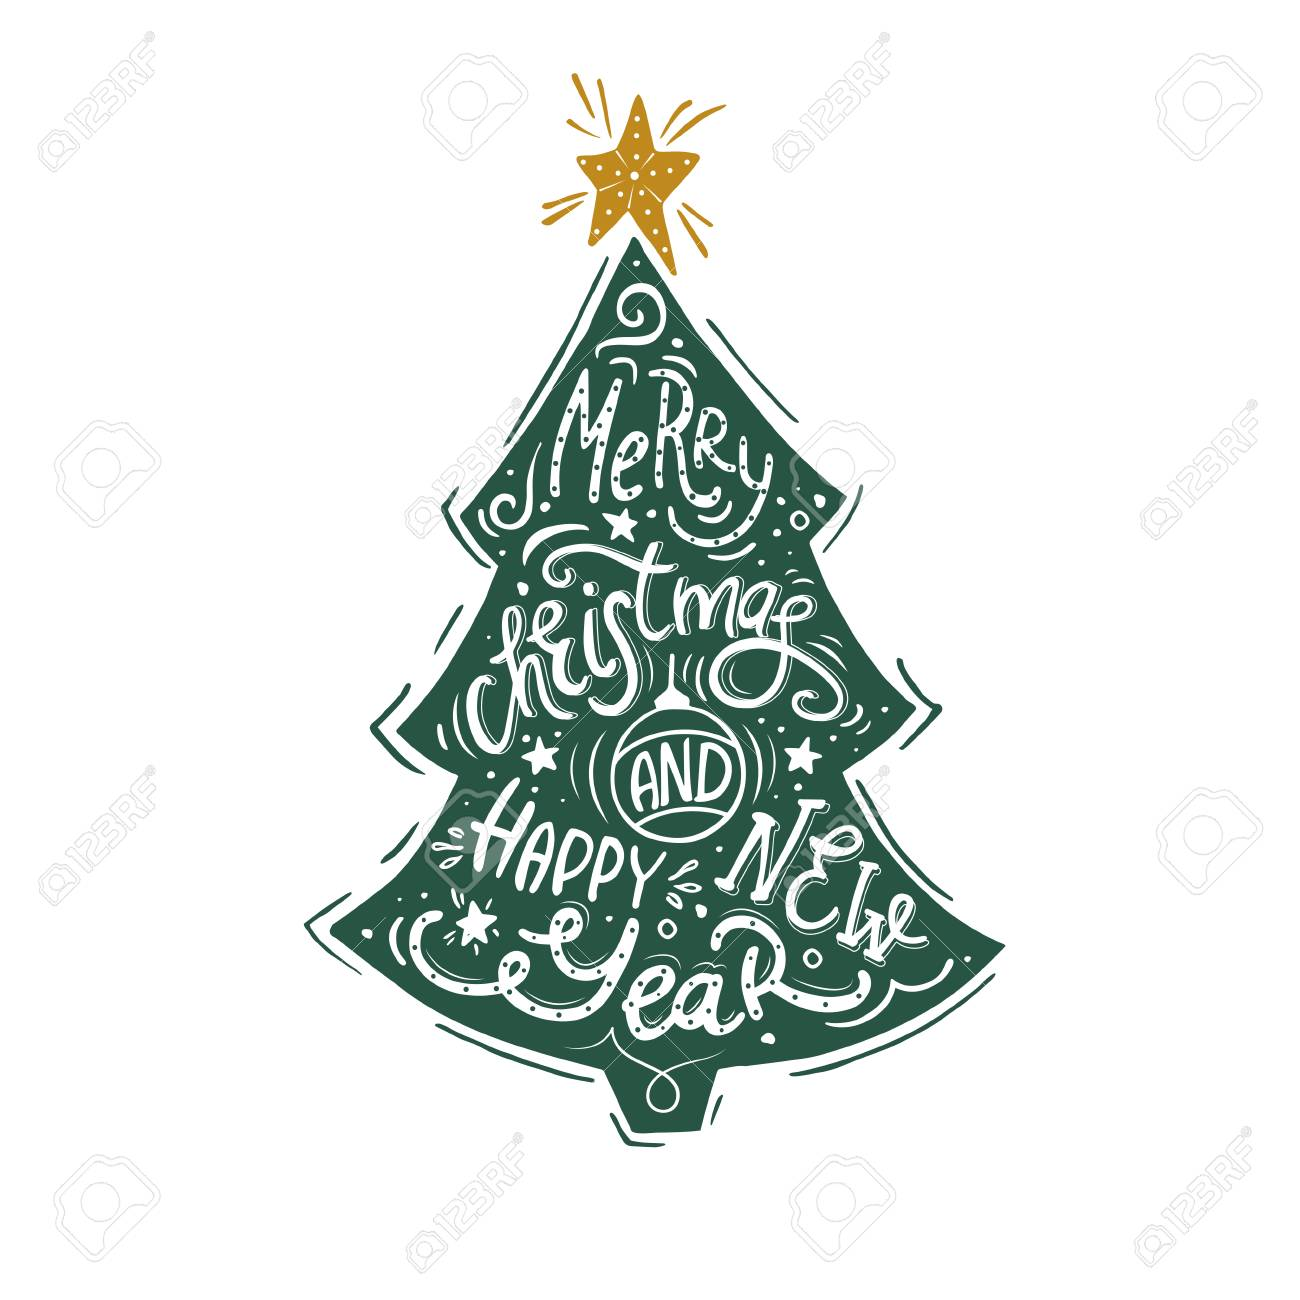 Vintage Poster With Christmas Tree And Hand Lettering On New